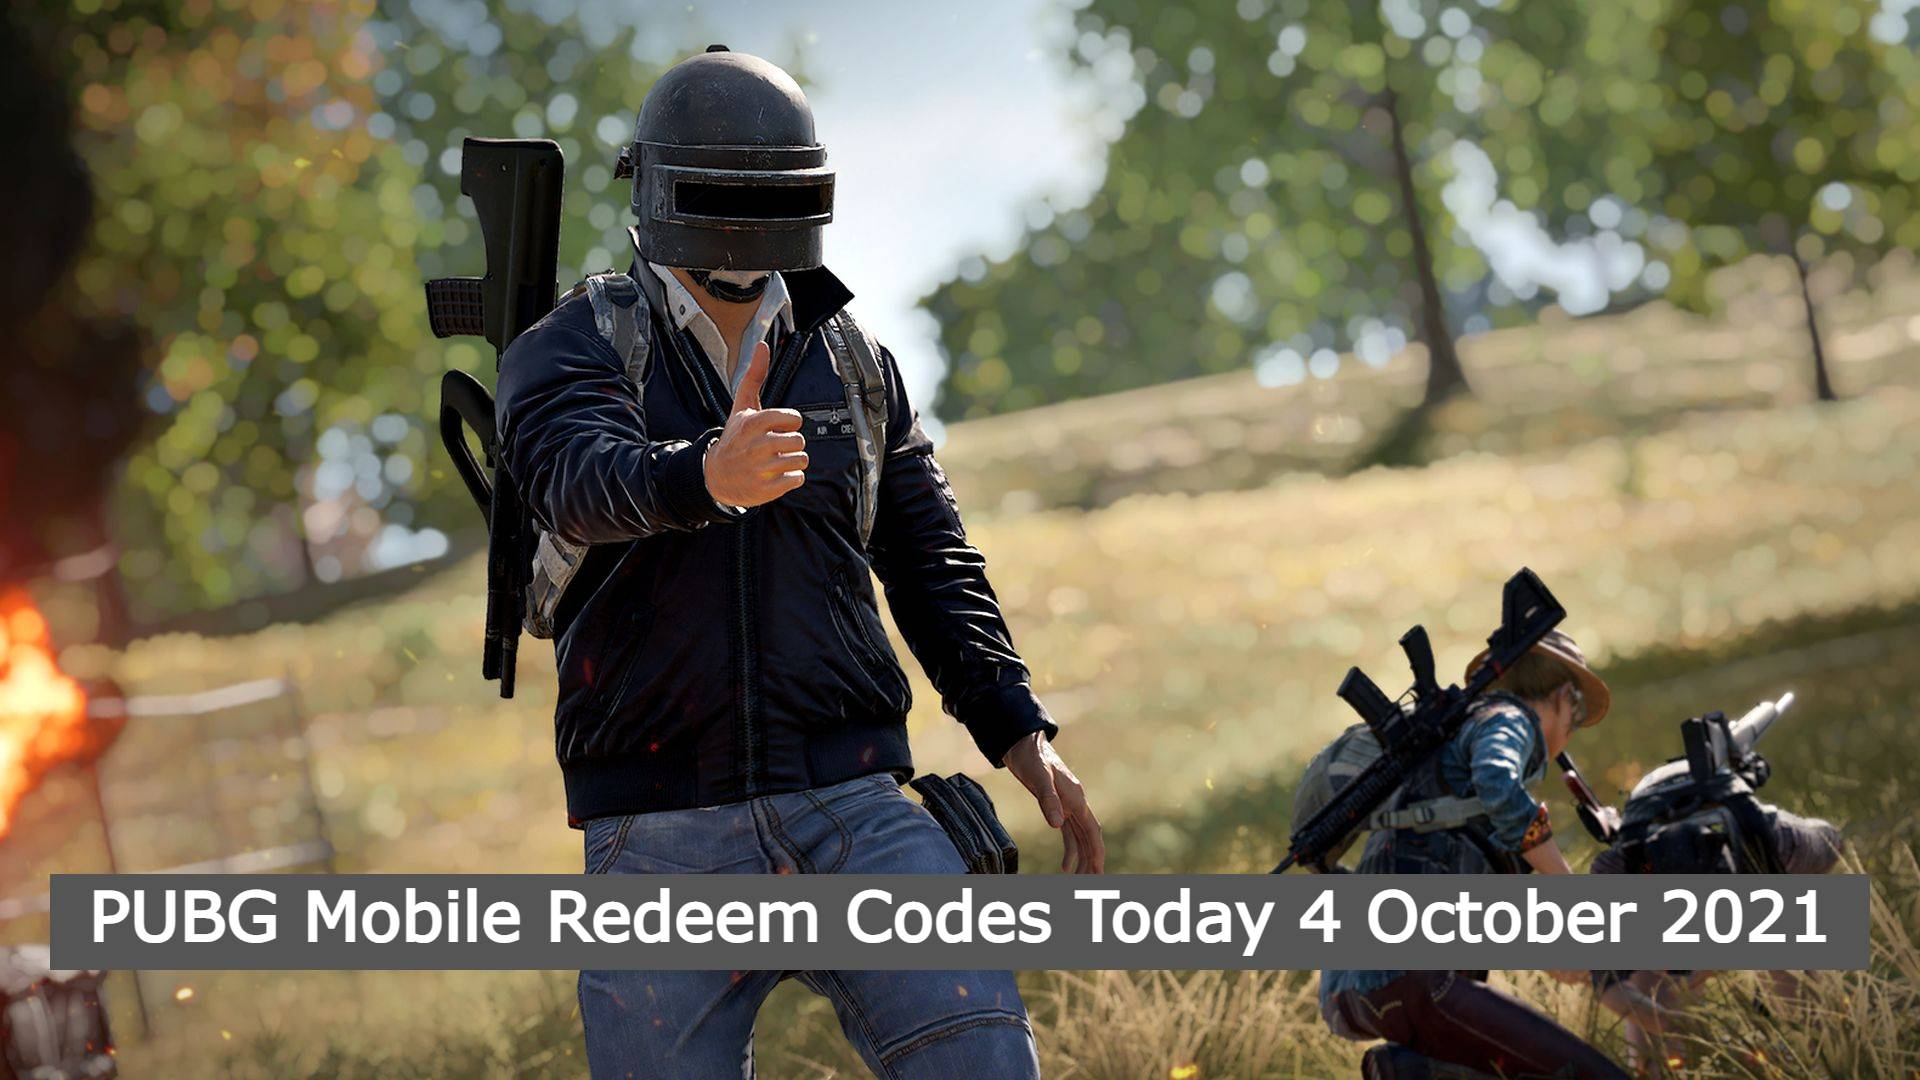 PUBG Mobile Redeem Codes Today 4 October 2021